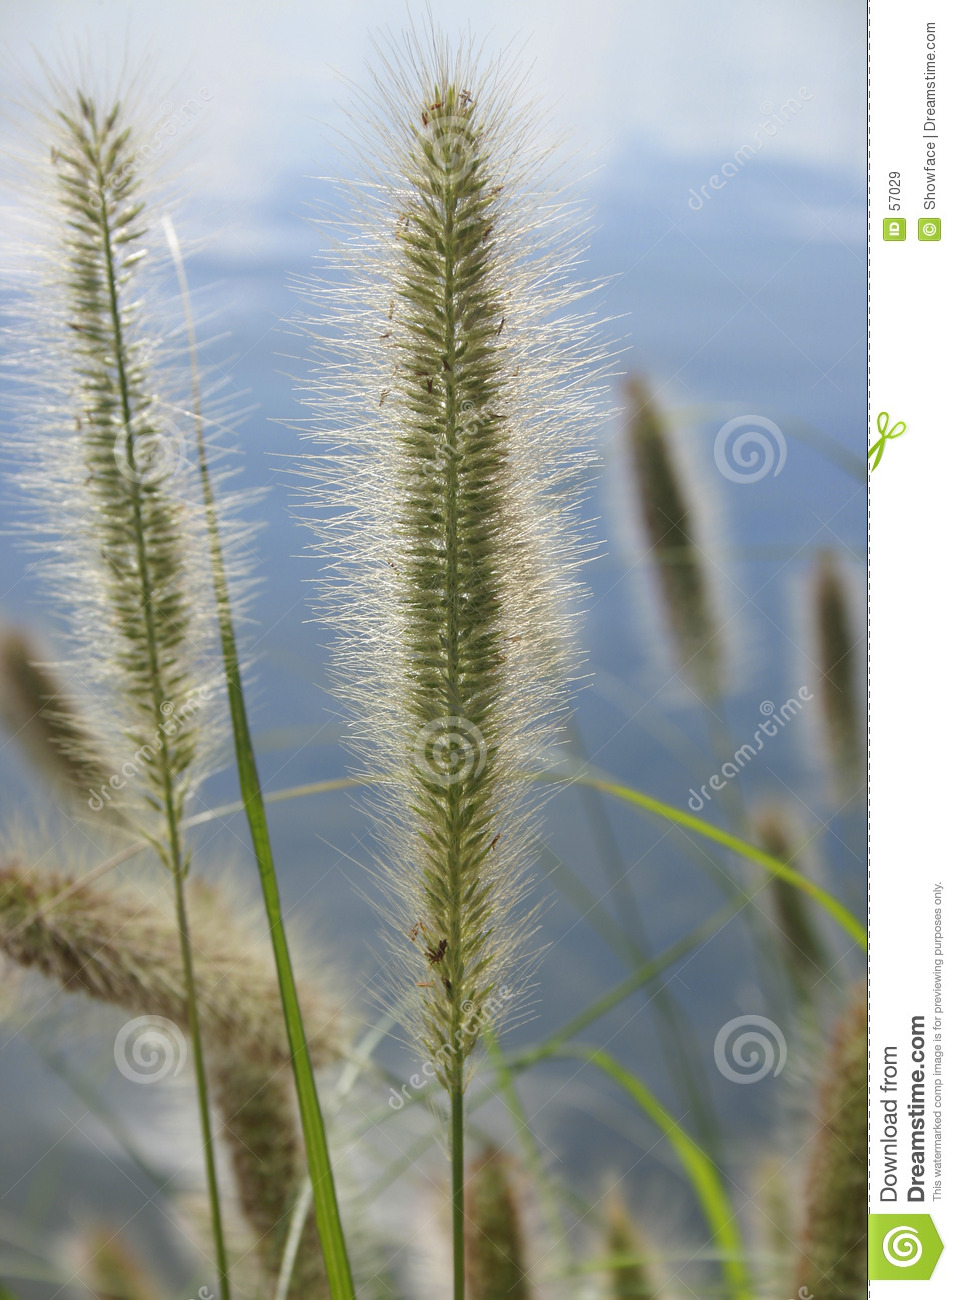 Download Alopecuroides De Pennisetum - Compartiment Du Canada Image stock - Image du serein, compartiment: 57029